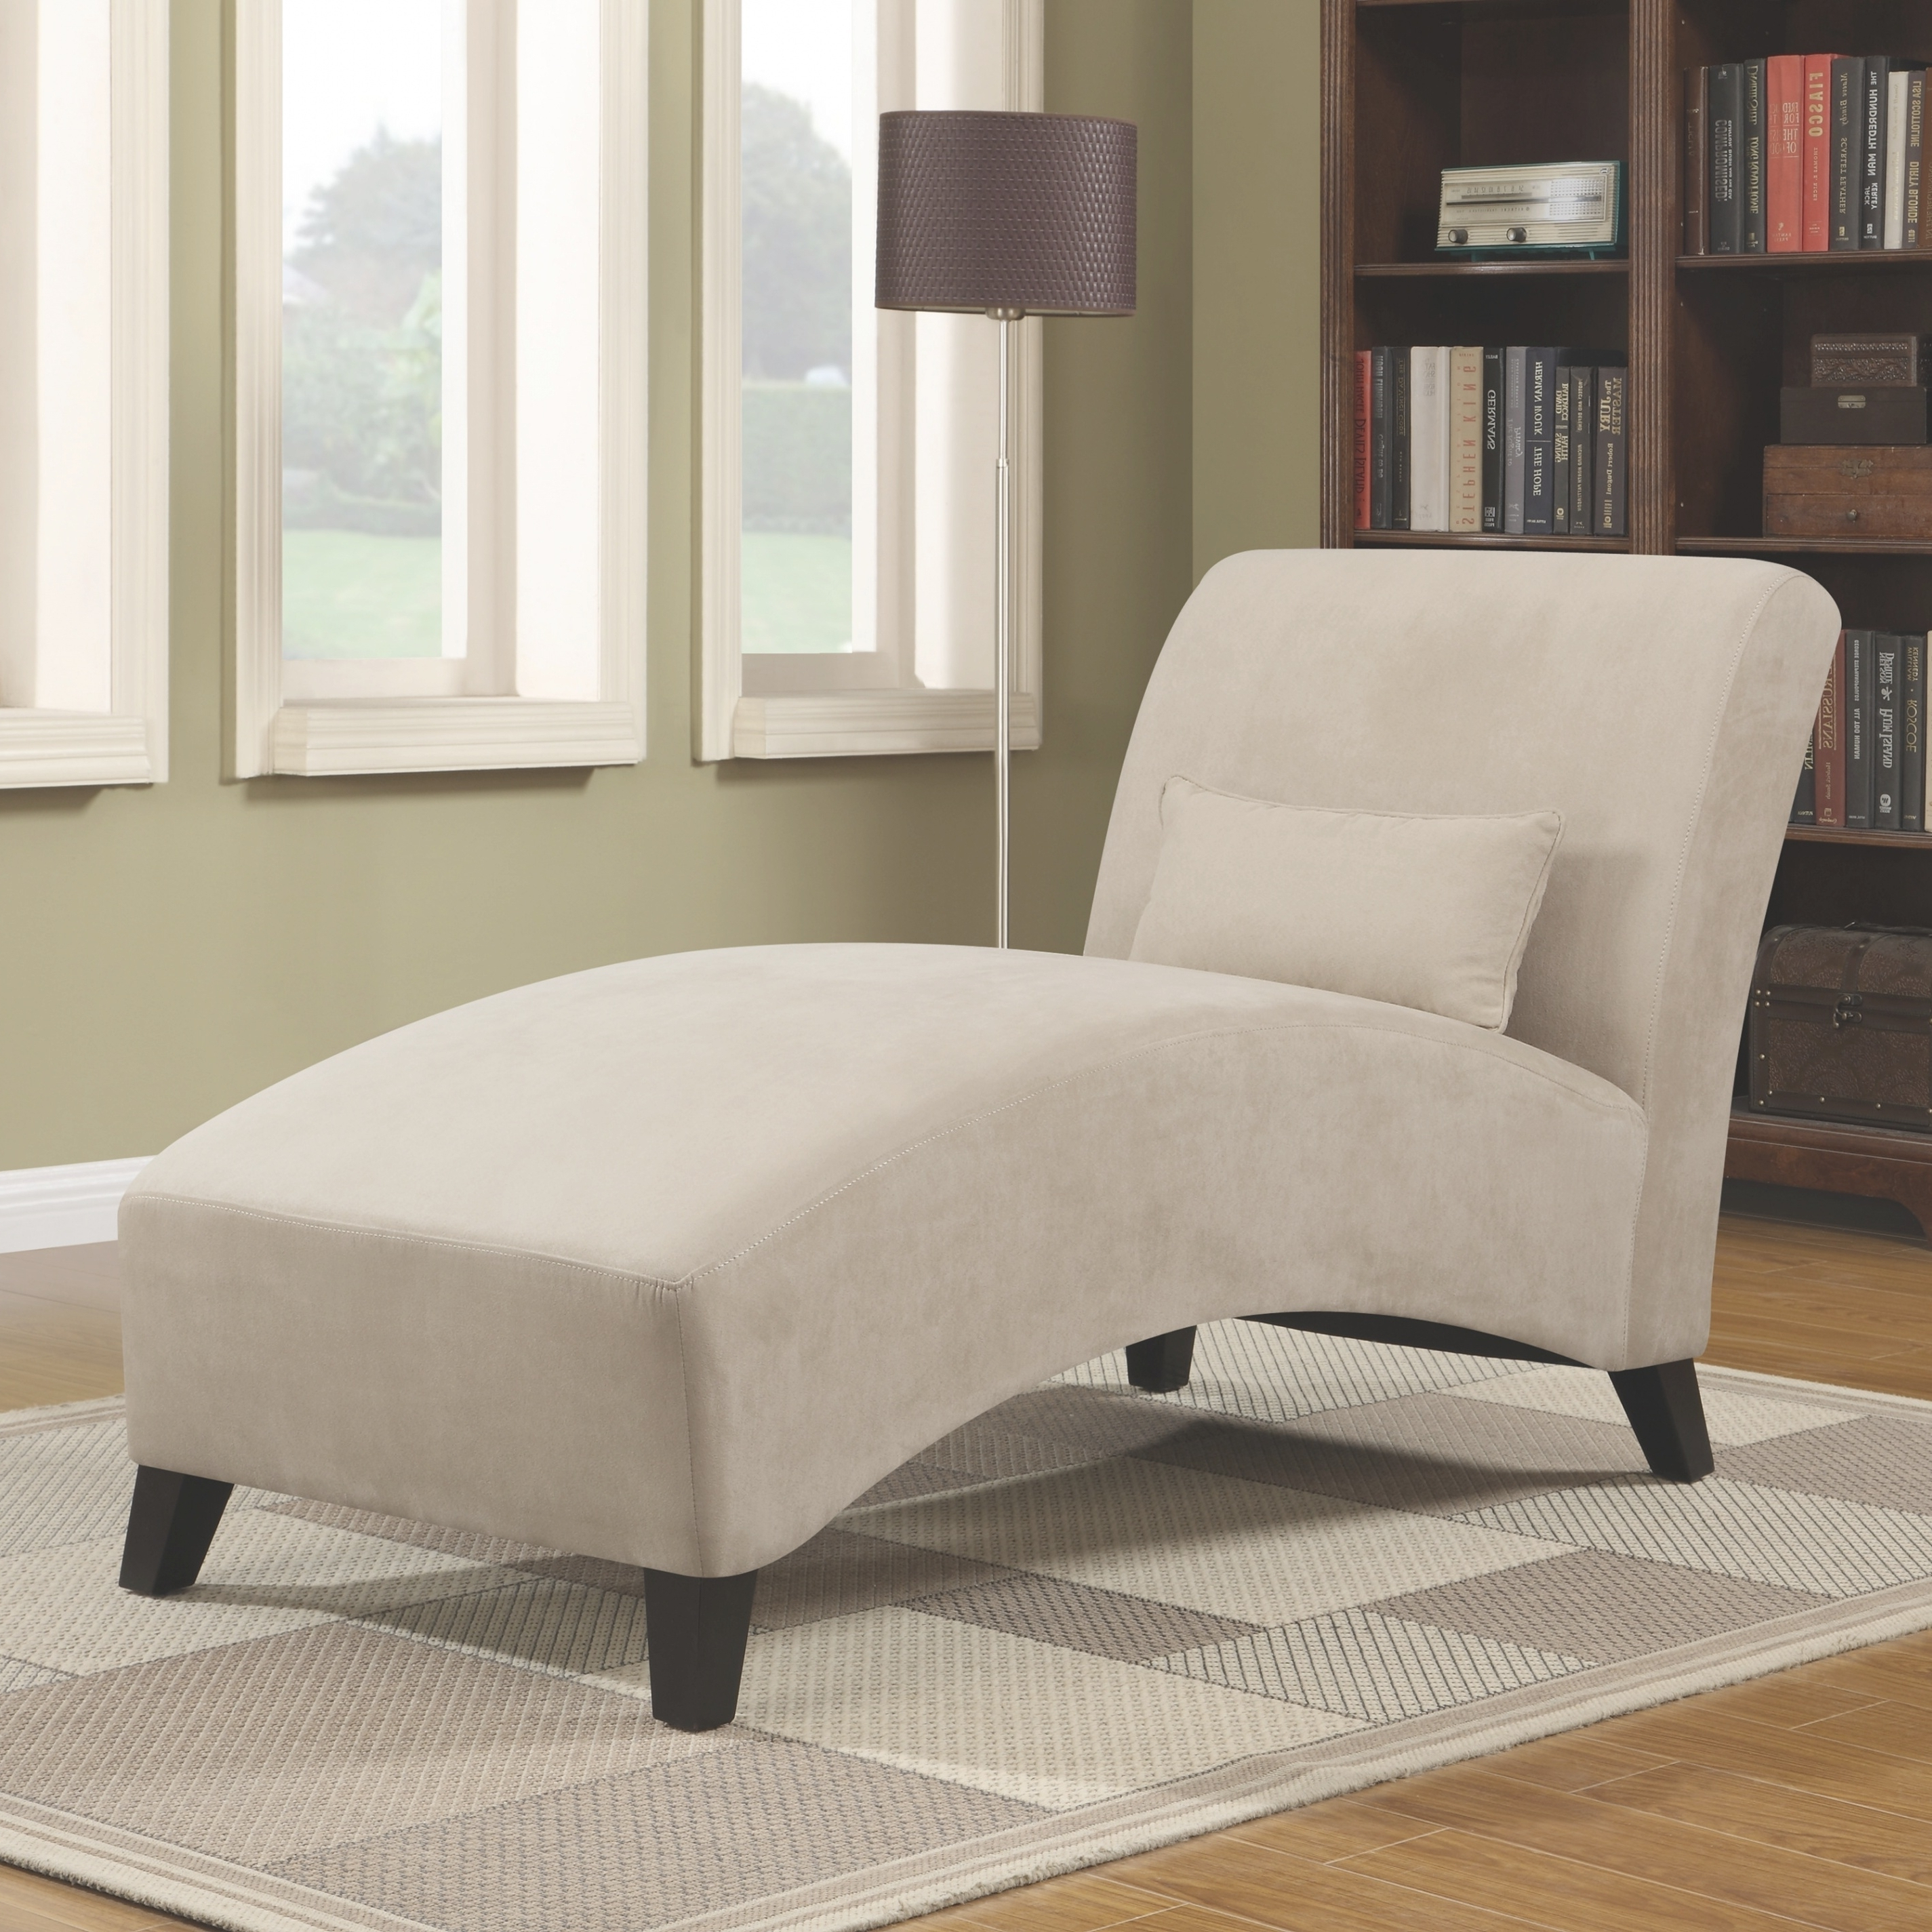 Cover For Indoor Chaise Lounge Chair • Lounge Chairs Ideas With Regard To Most Popular Indoor Chaise Lounge Covers (View 3 of 15)